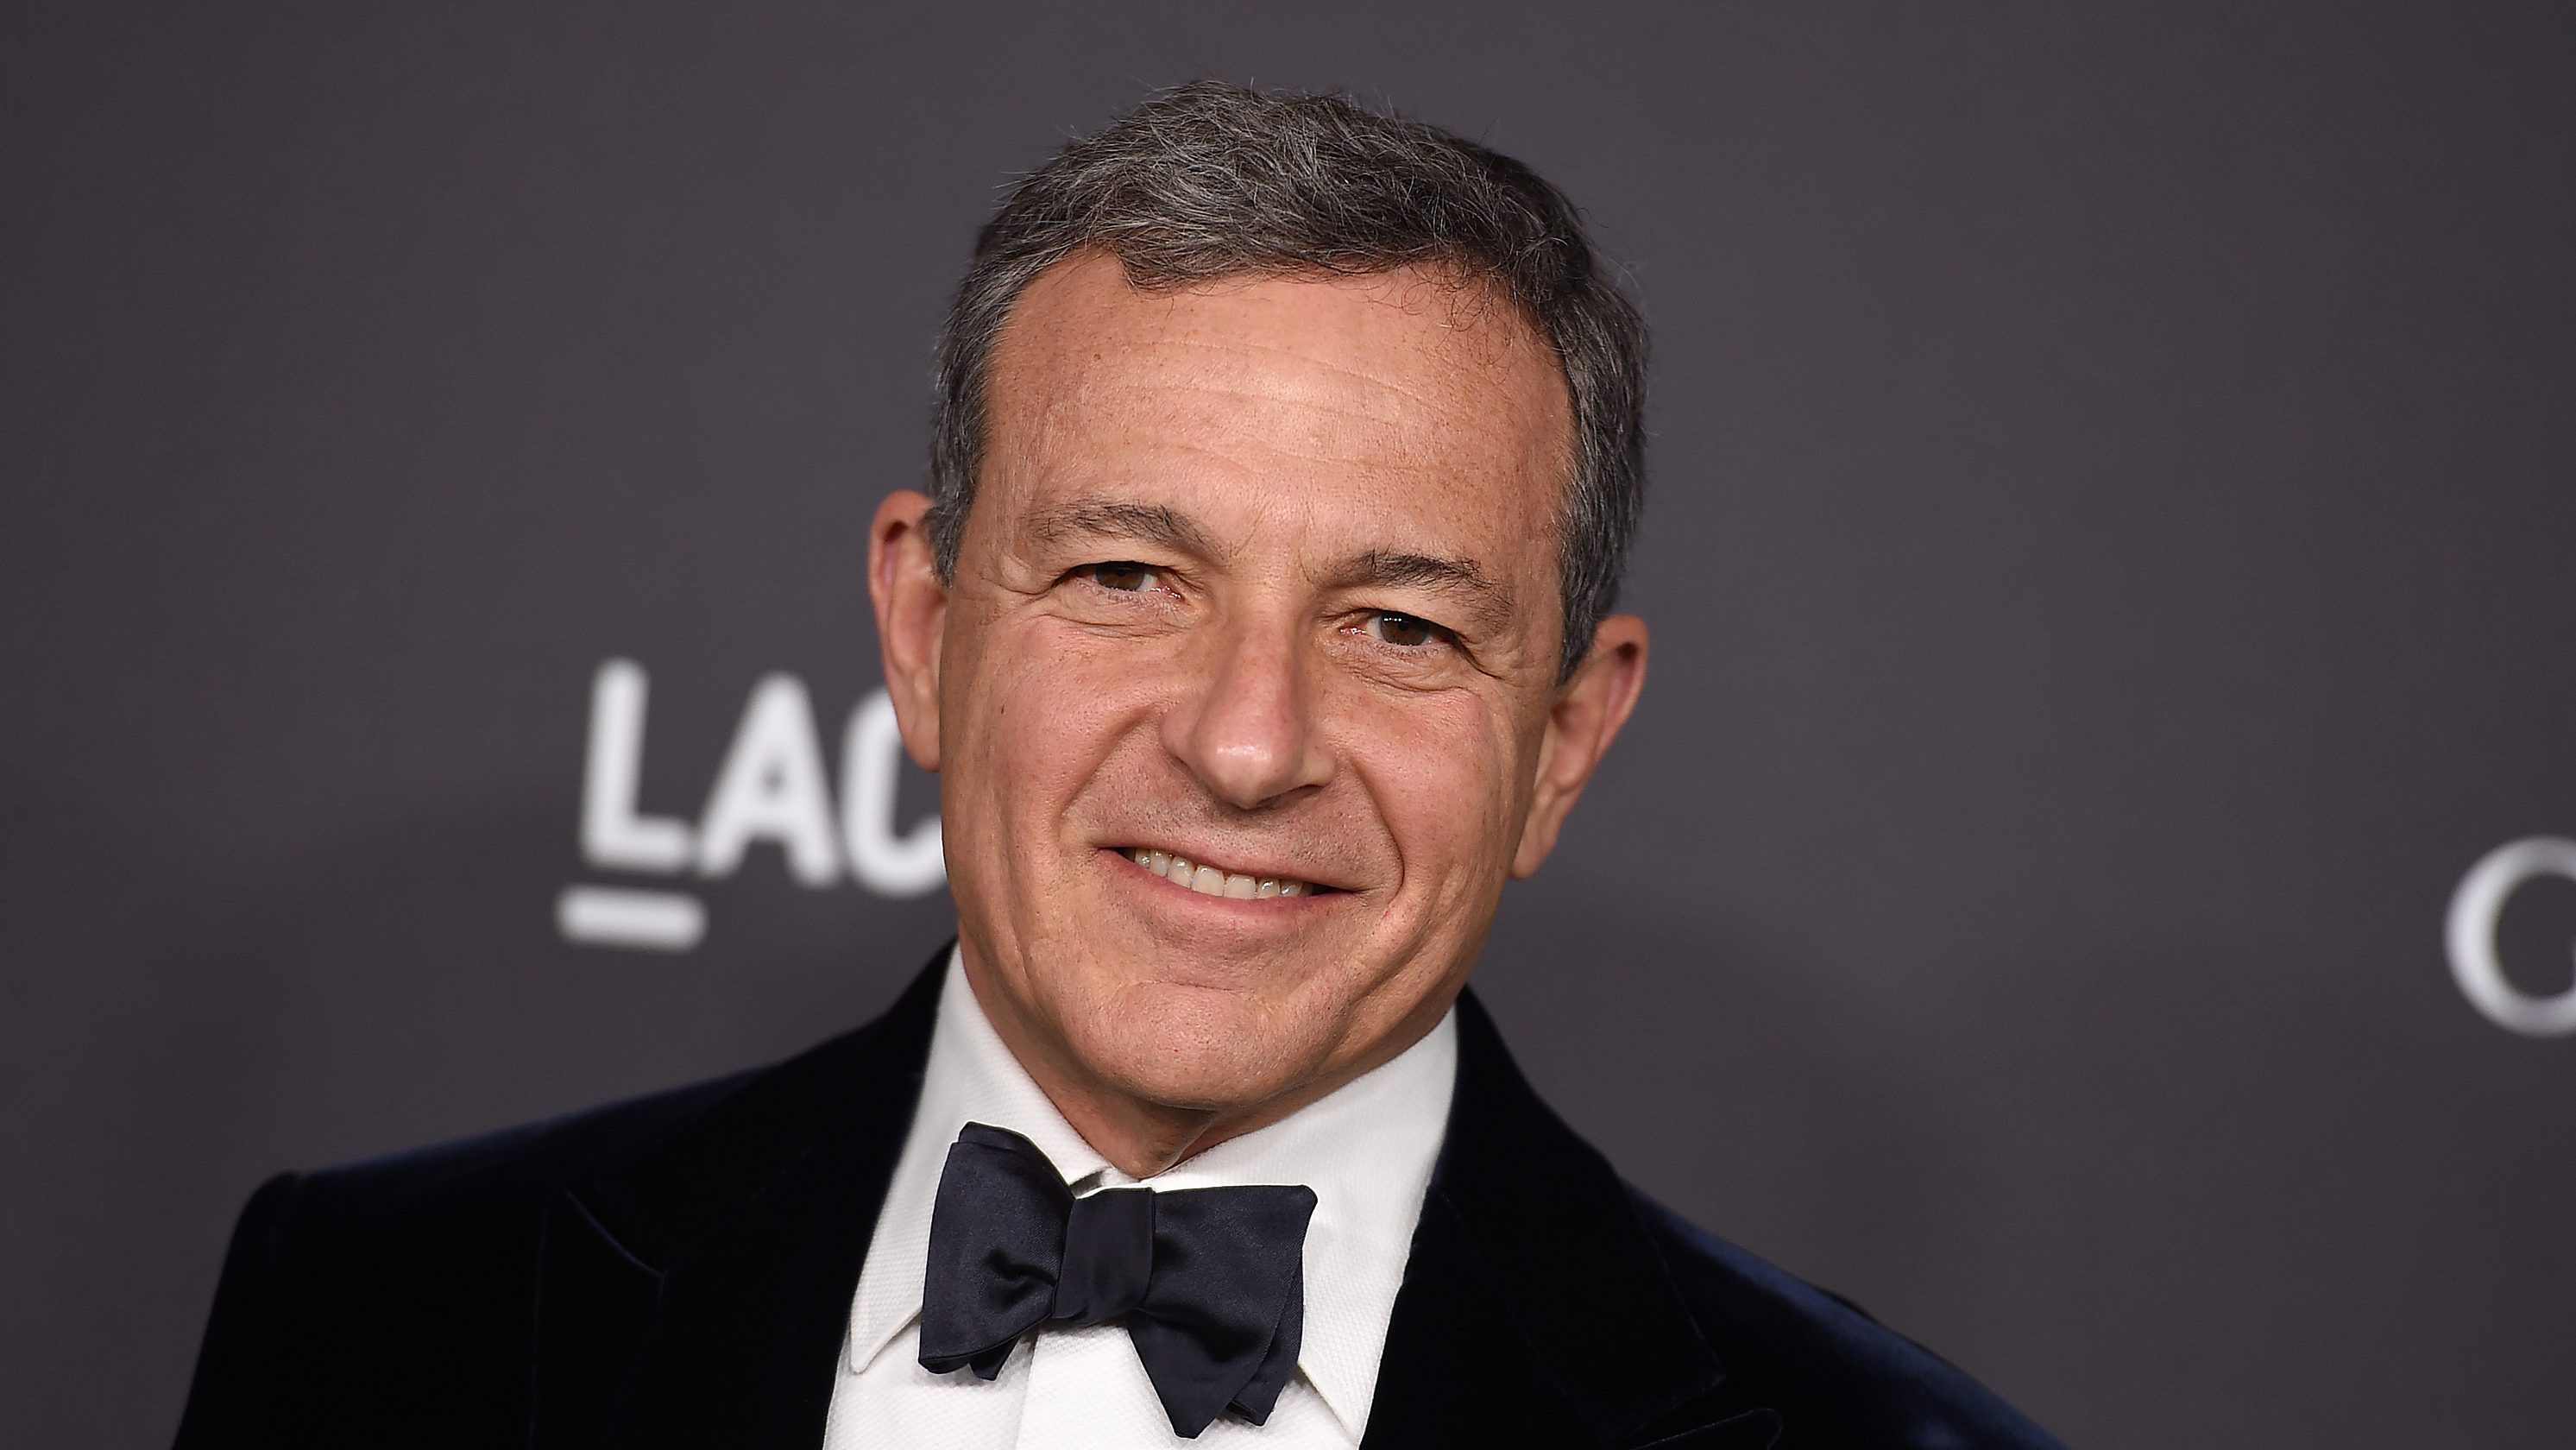 Bob Iger arrives at the 2016 LACMA Art + Film Gala on Saturday, Oct. 29, 2016 in Los Angeles. (Photo by Jordan Strauss/Invision/AP)